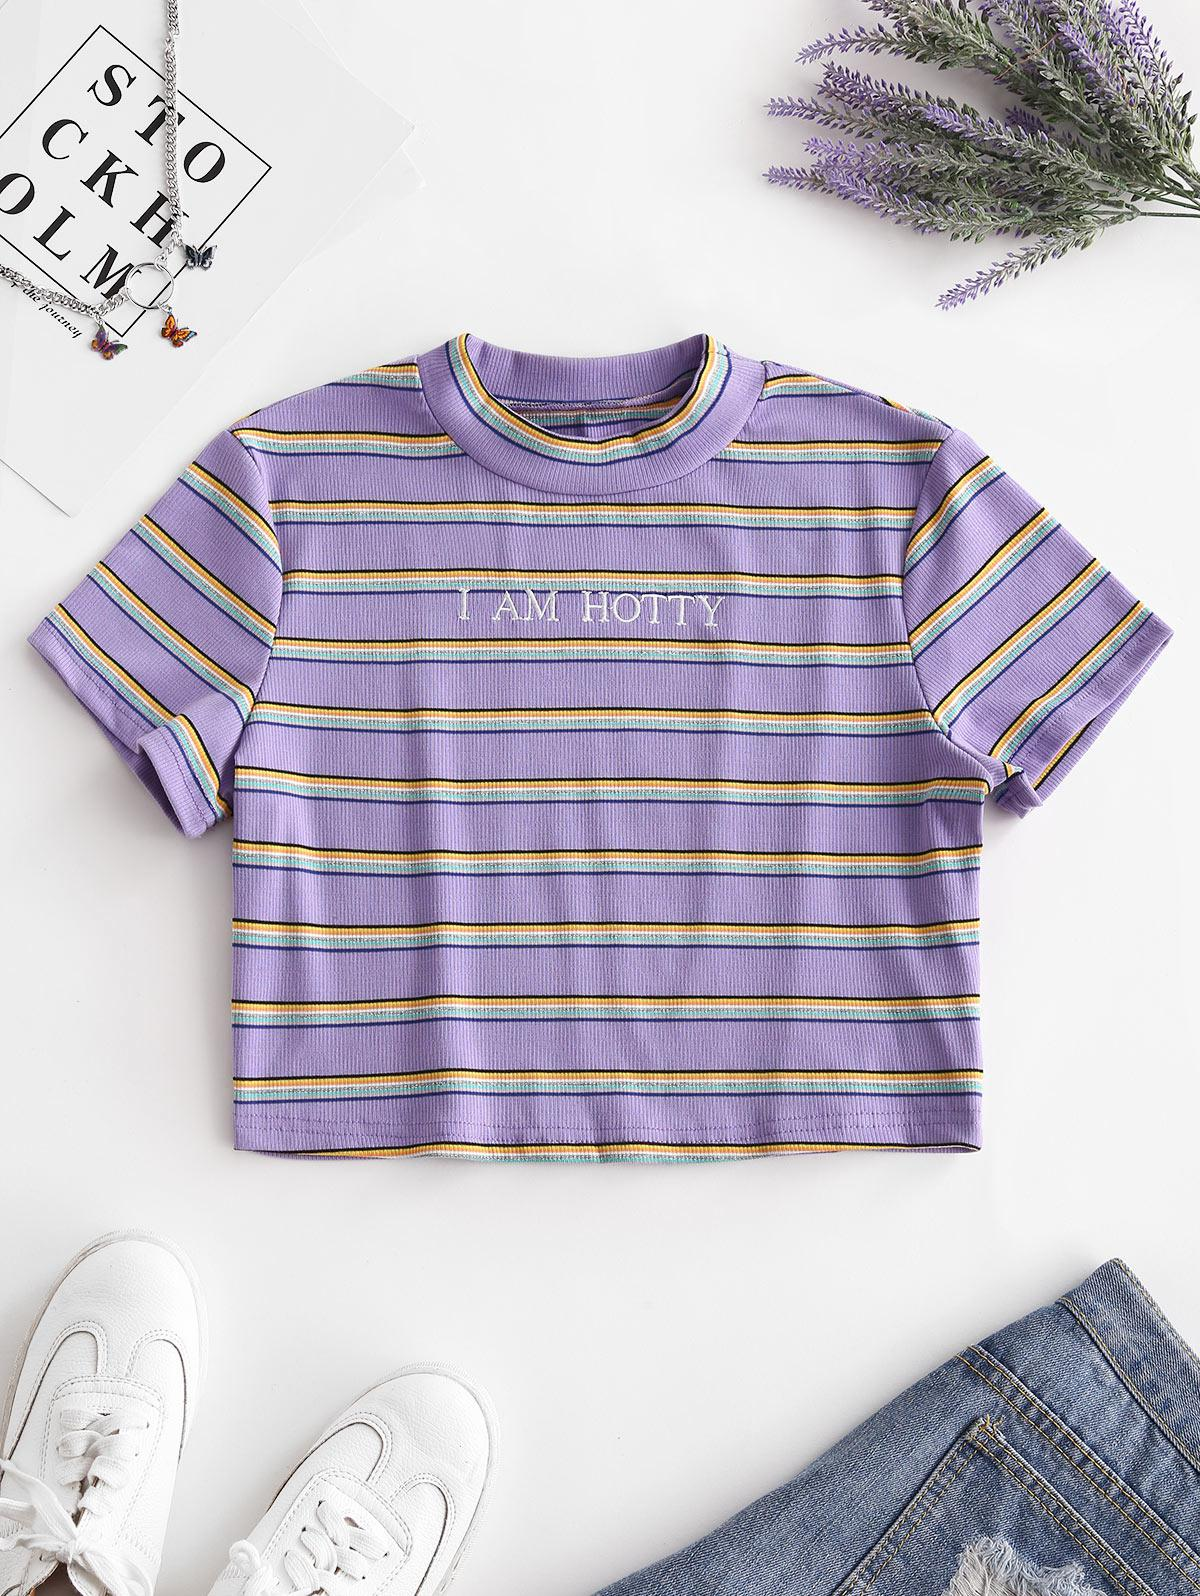 Ribbed I AM HOTTY Embroidered Glitter Stripes Tee